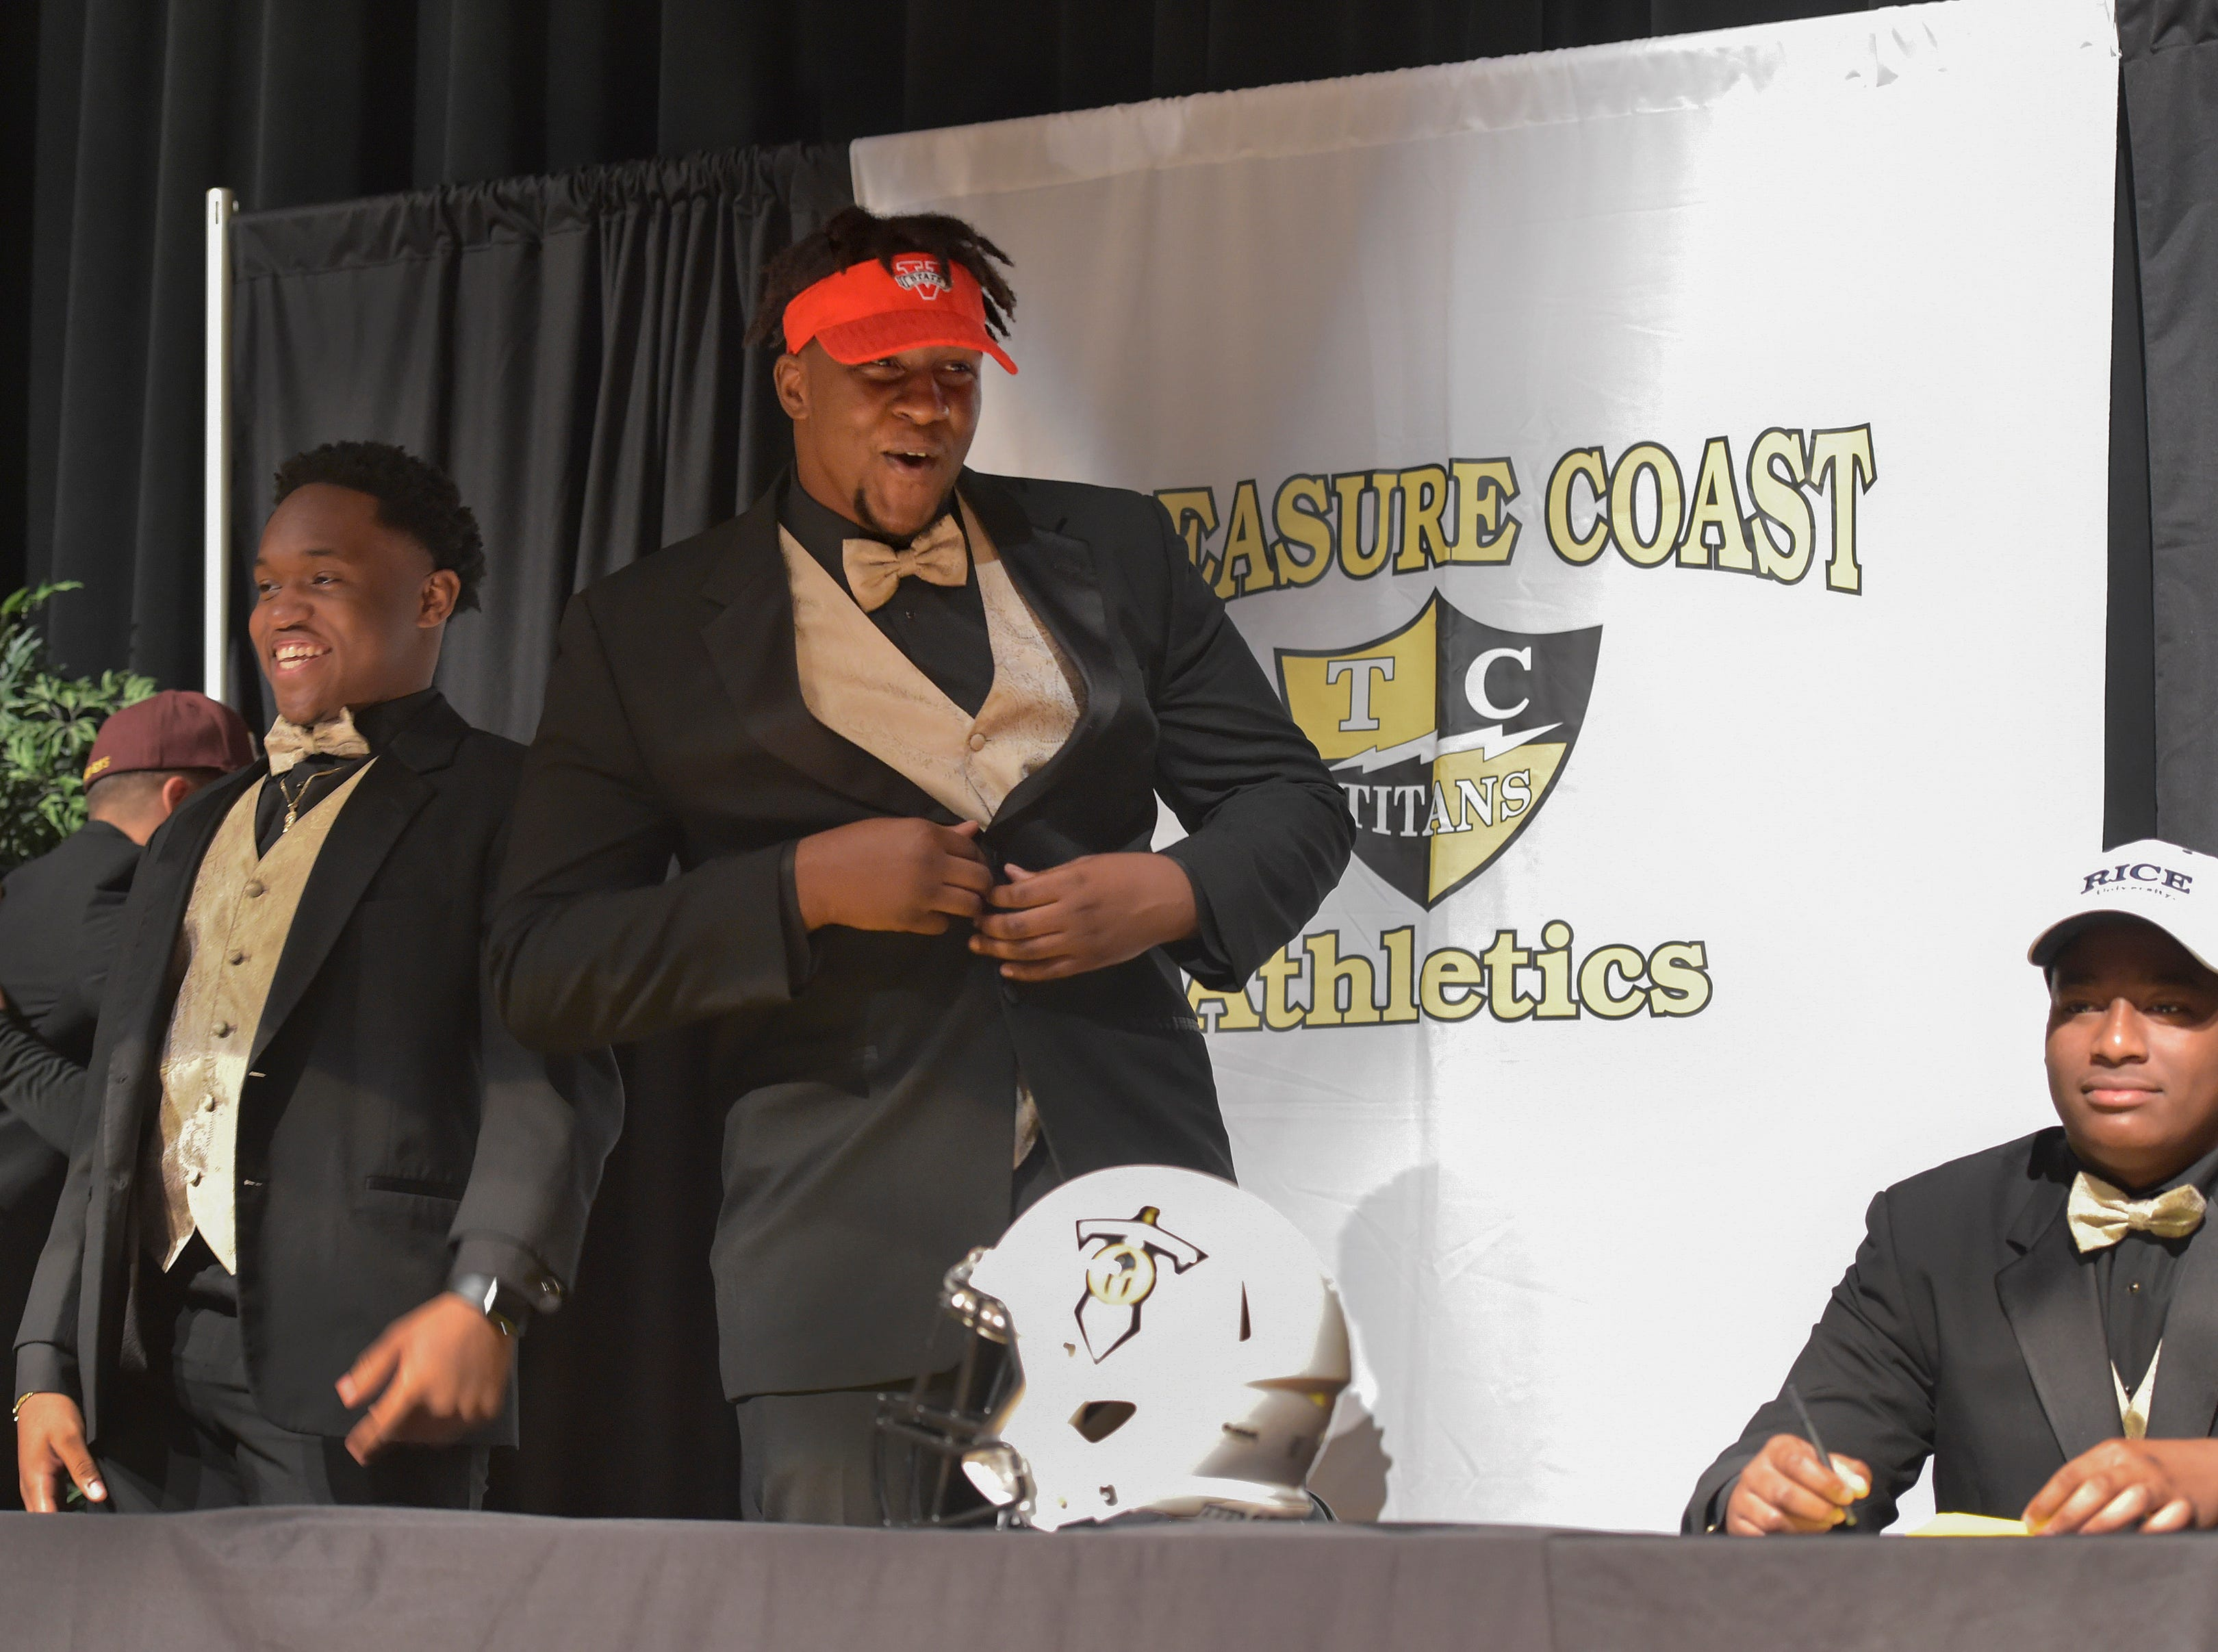 "Treasure Coast High School football players (from left) Brendon Joseph, Joel Rose, and Jerry Johnson, begin their celebrations after announcing their college choices during the school's National Signing Day ceremony on Wednesday, Feb. 6, 2019, inside the school's auditorium. ""It's a wonderful experience, I get to share this wonderful experience with my family, coaches , friends, it's a really blessing day,"" said Rose, who signed to play football for Valdosta State."